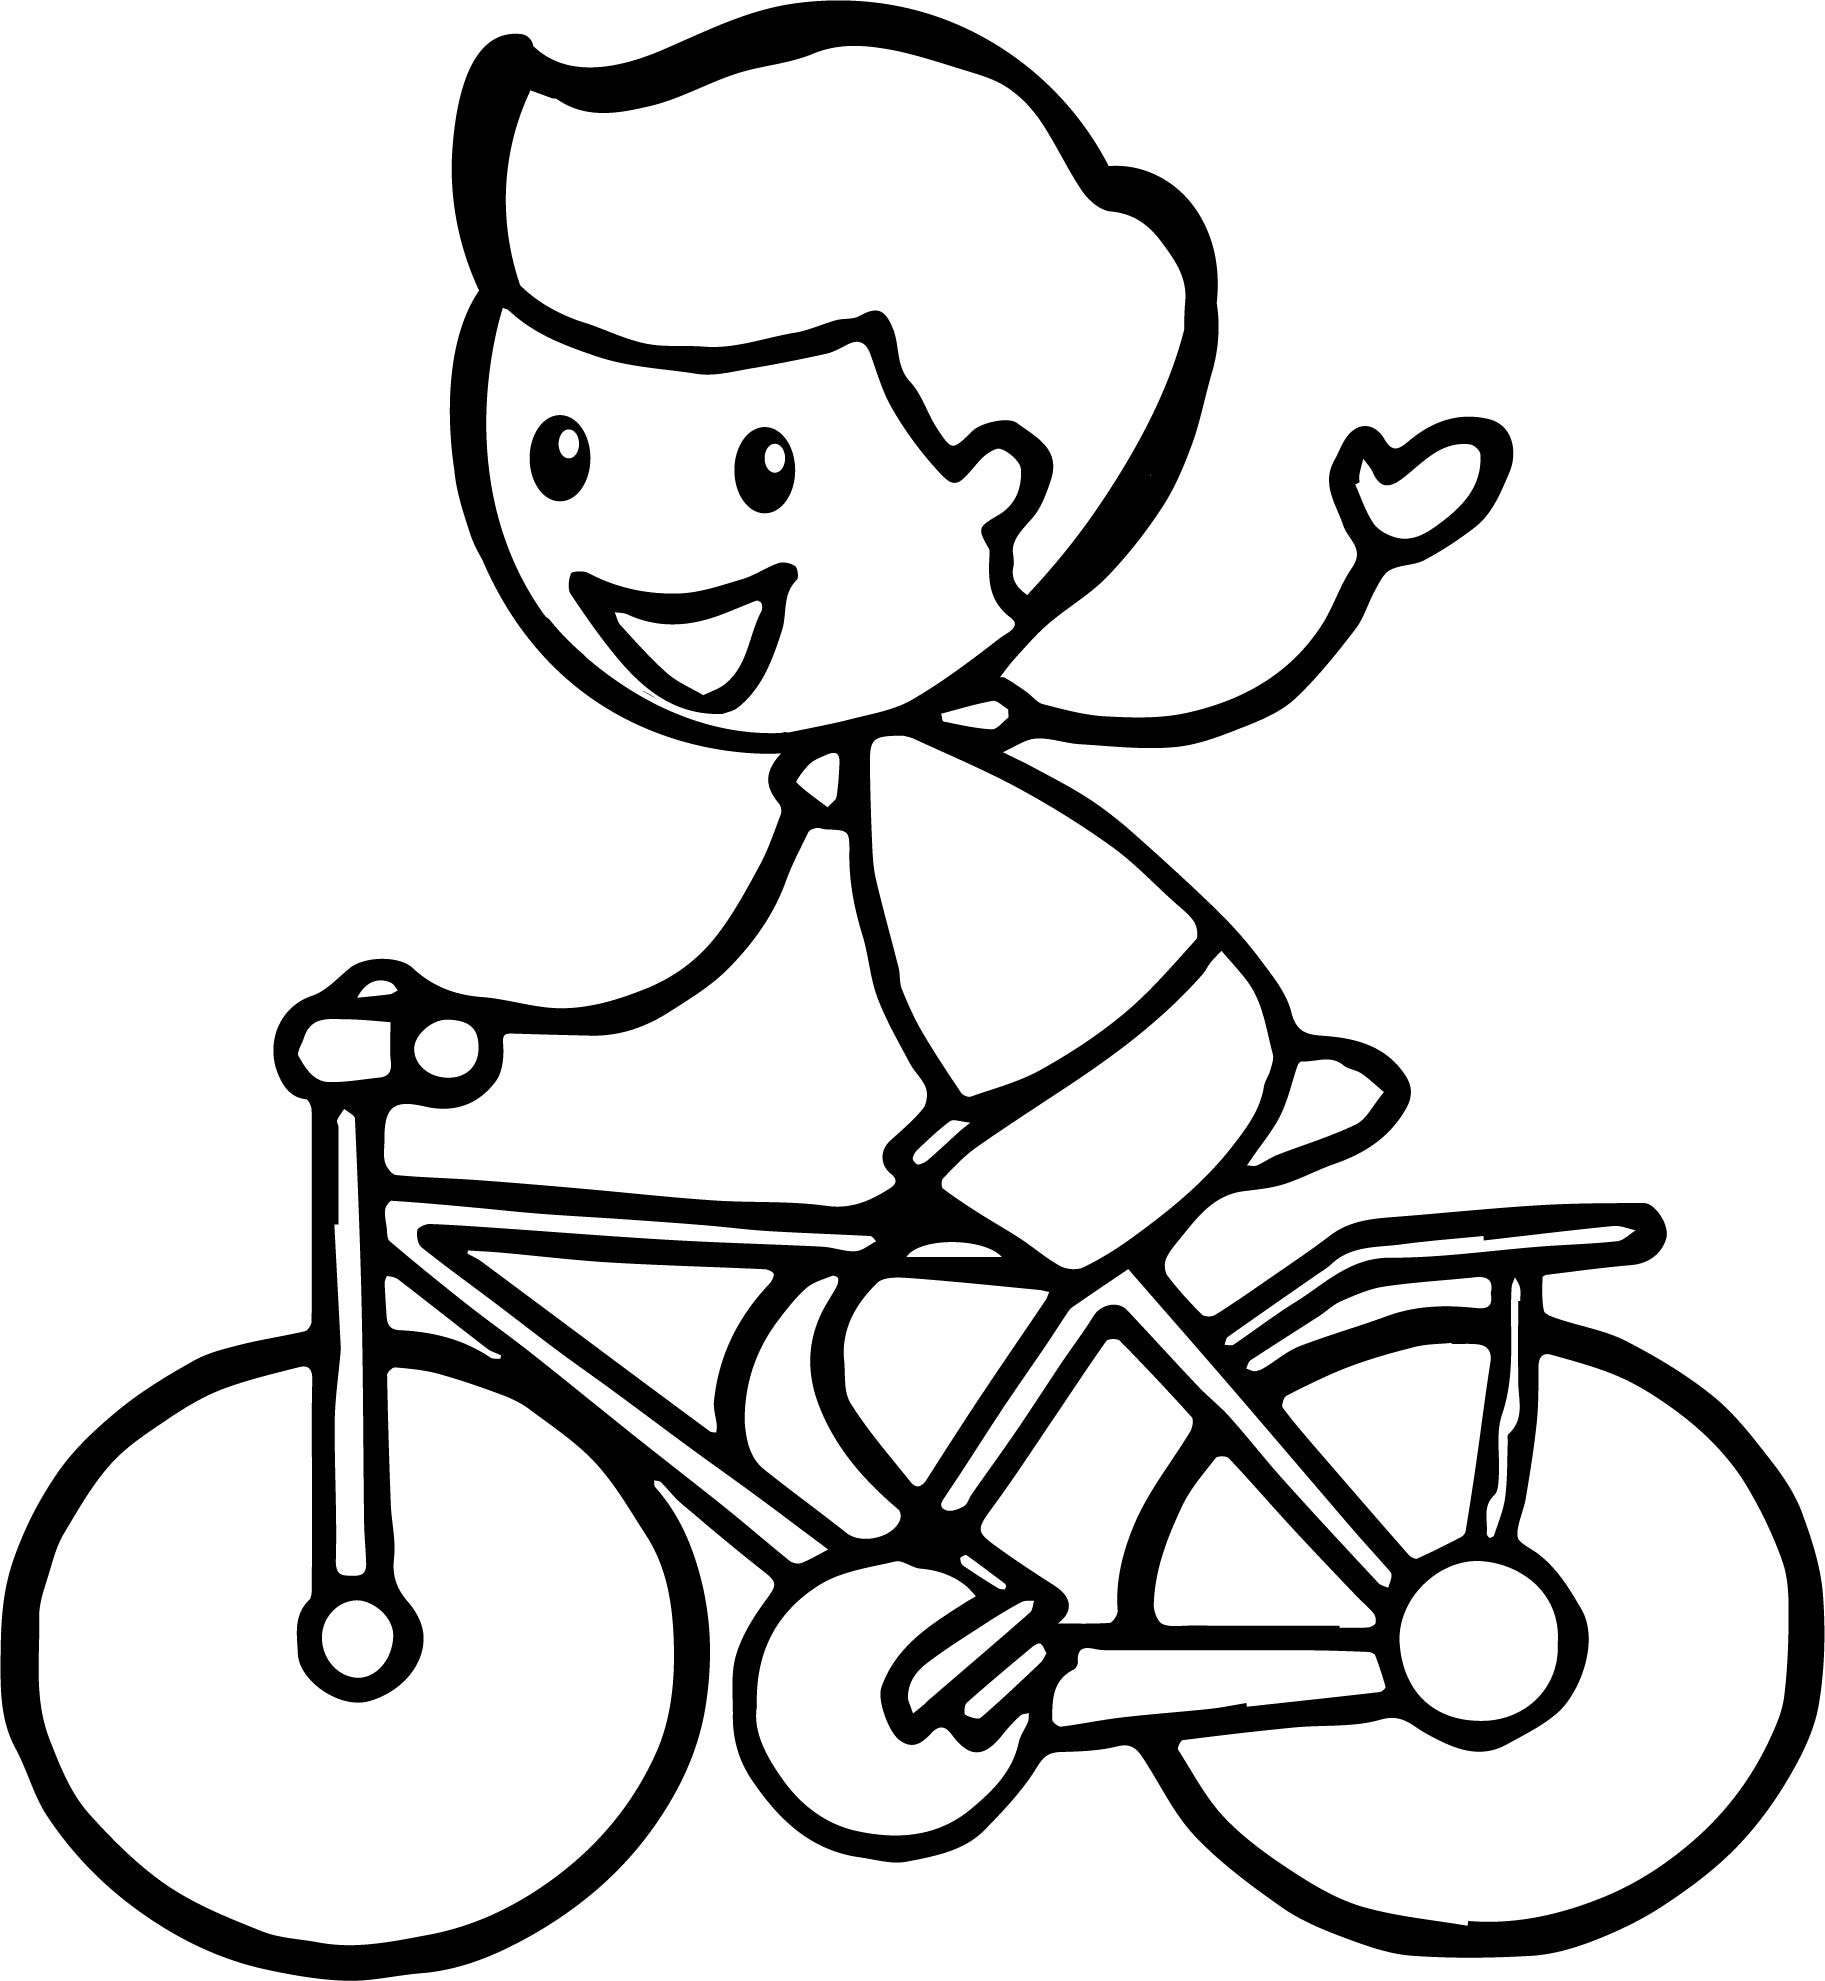 1825x1981 Lilo And Stitch On Bike Coloring Pages For Kids Beautiful Stick